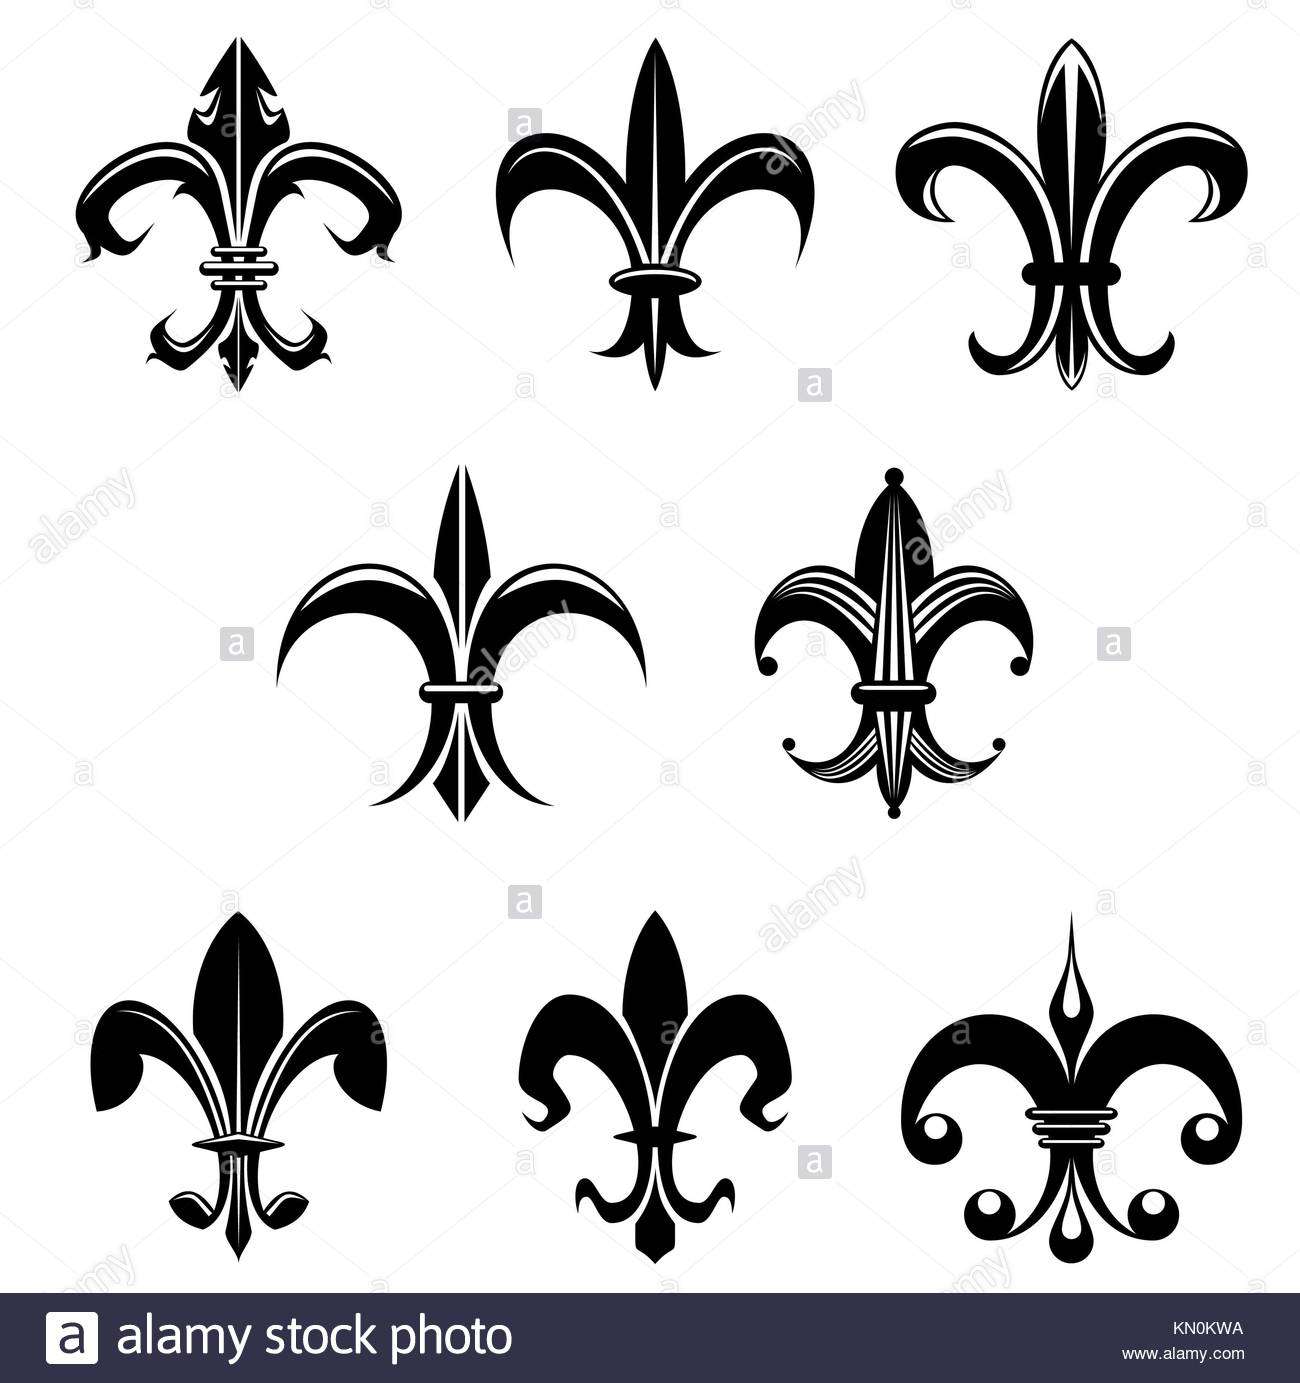 Lily flower vector symbol black and white stock photos images alamy royal french lily symbols for design and decorate stock image izmirmasajfo